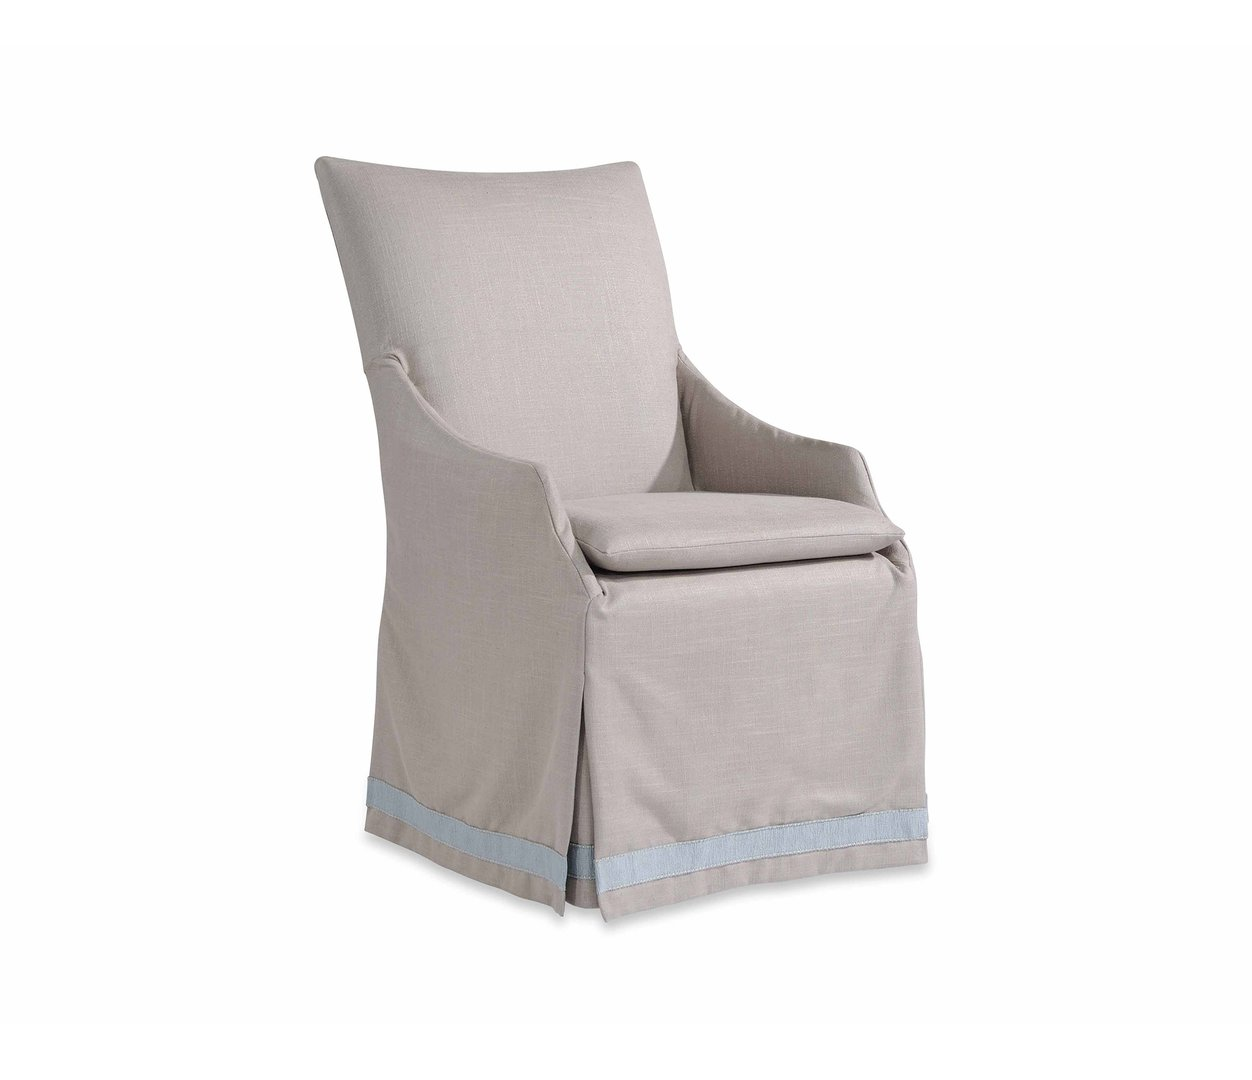 Renaday Slipcovered Dining Chair Image